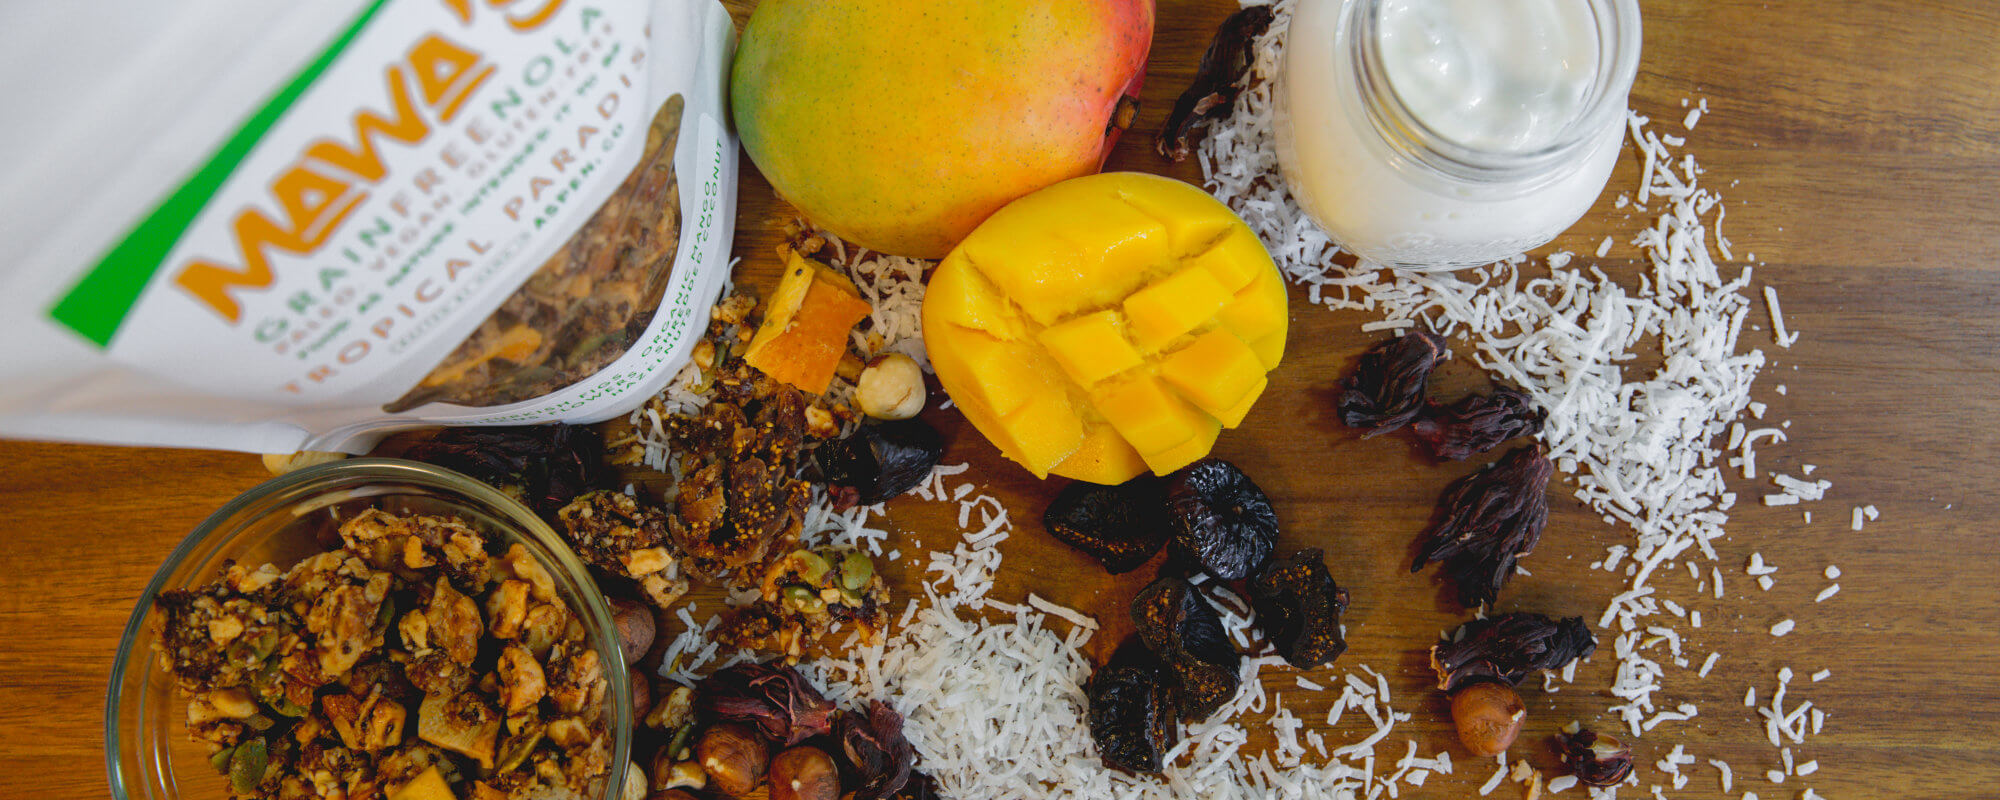 Tropical Paradise GrainFreeNola Granola Benefits